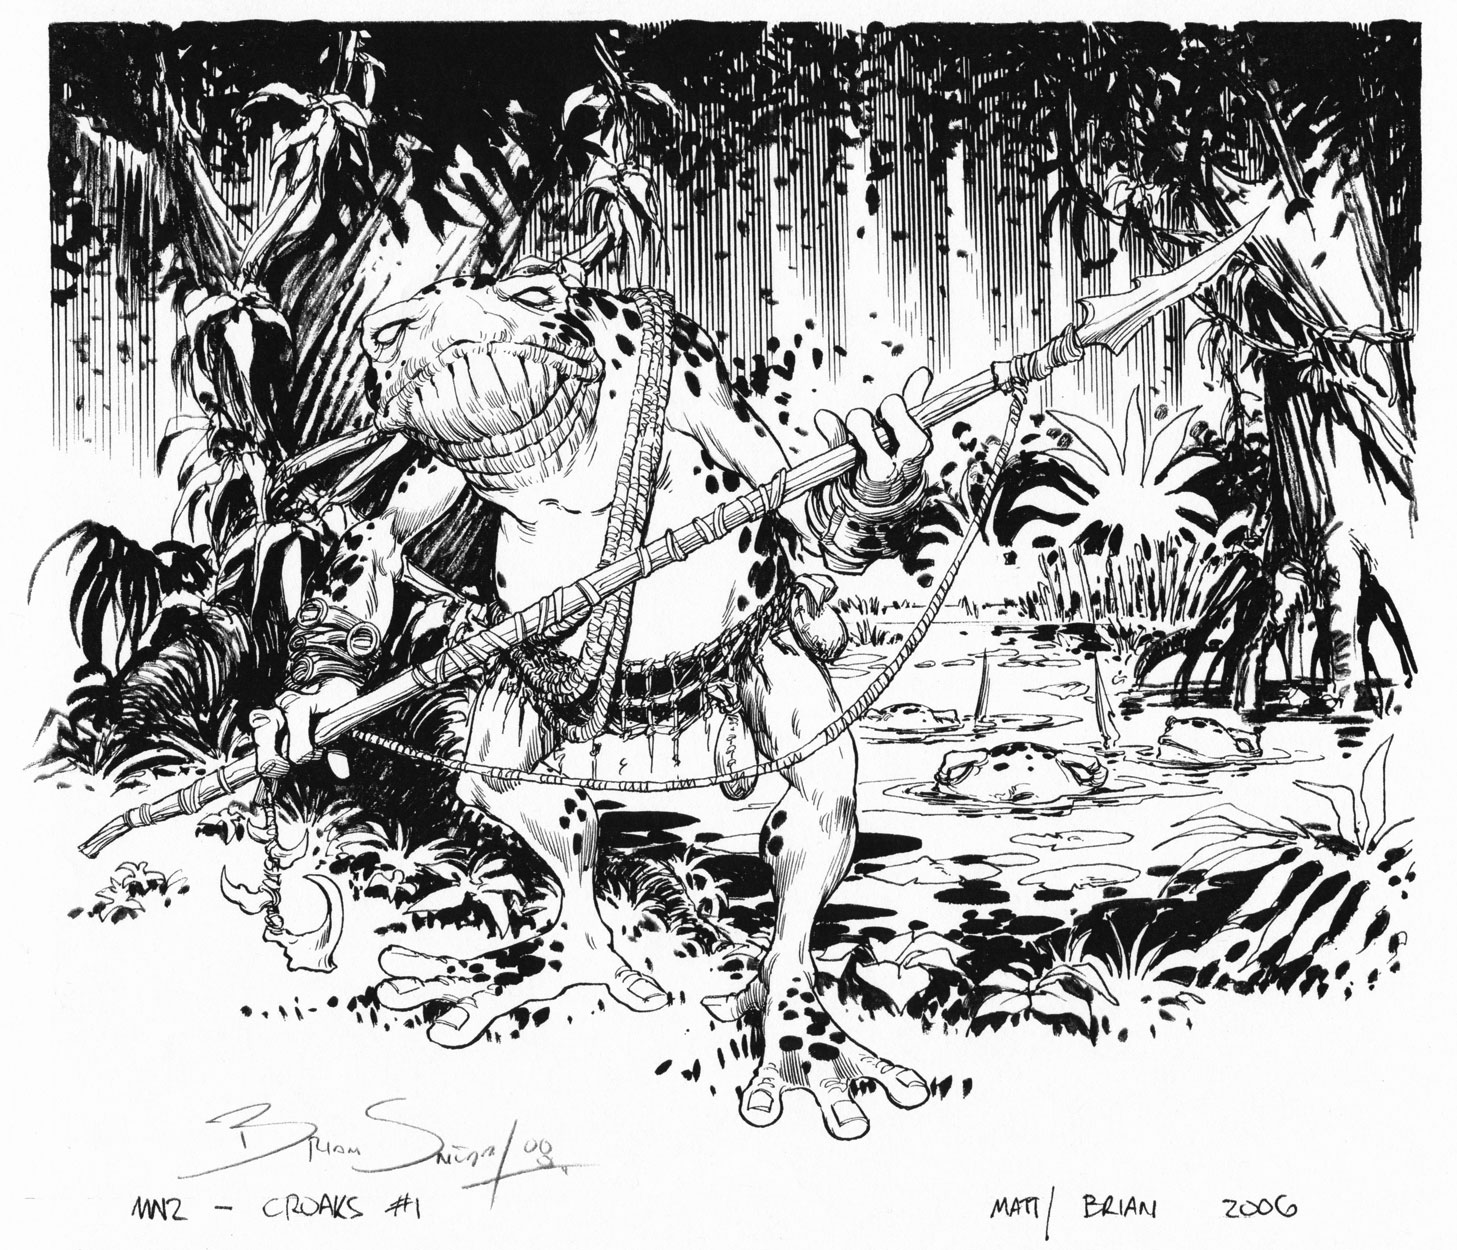 BRIAN SNOODY 2007 ROLE PLAY GAMING ART Comic Art